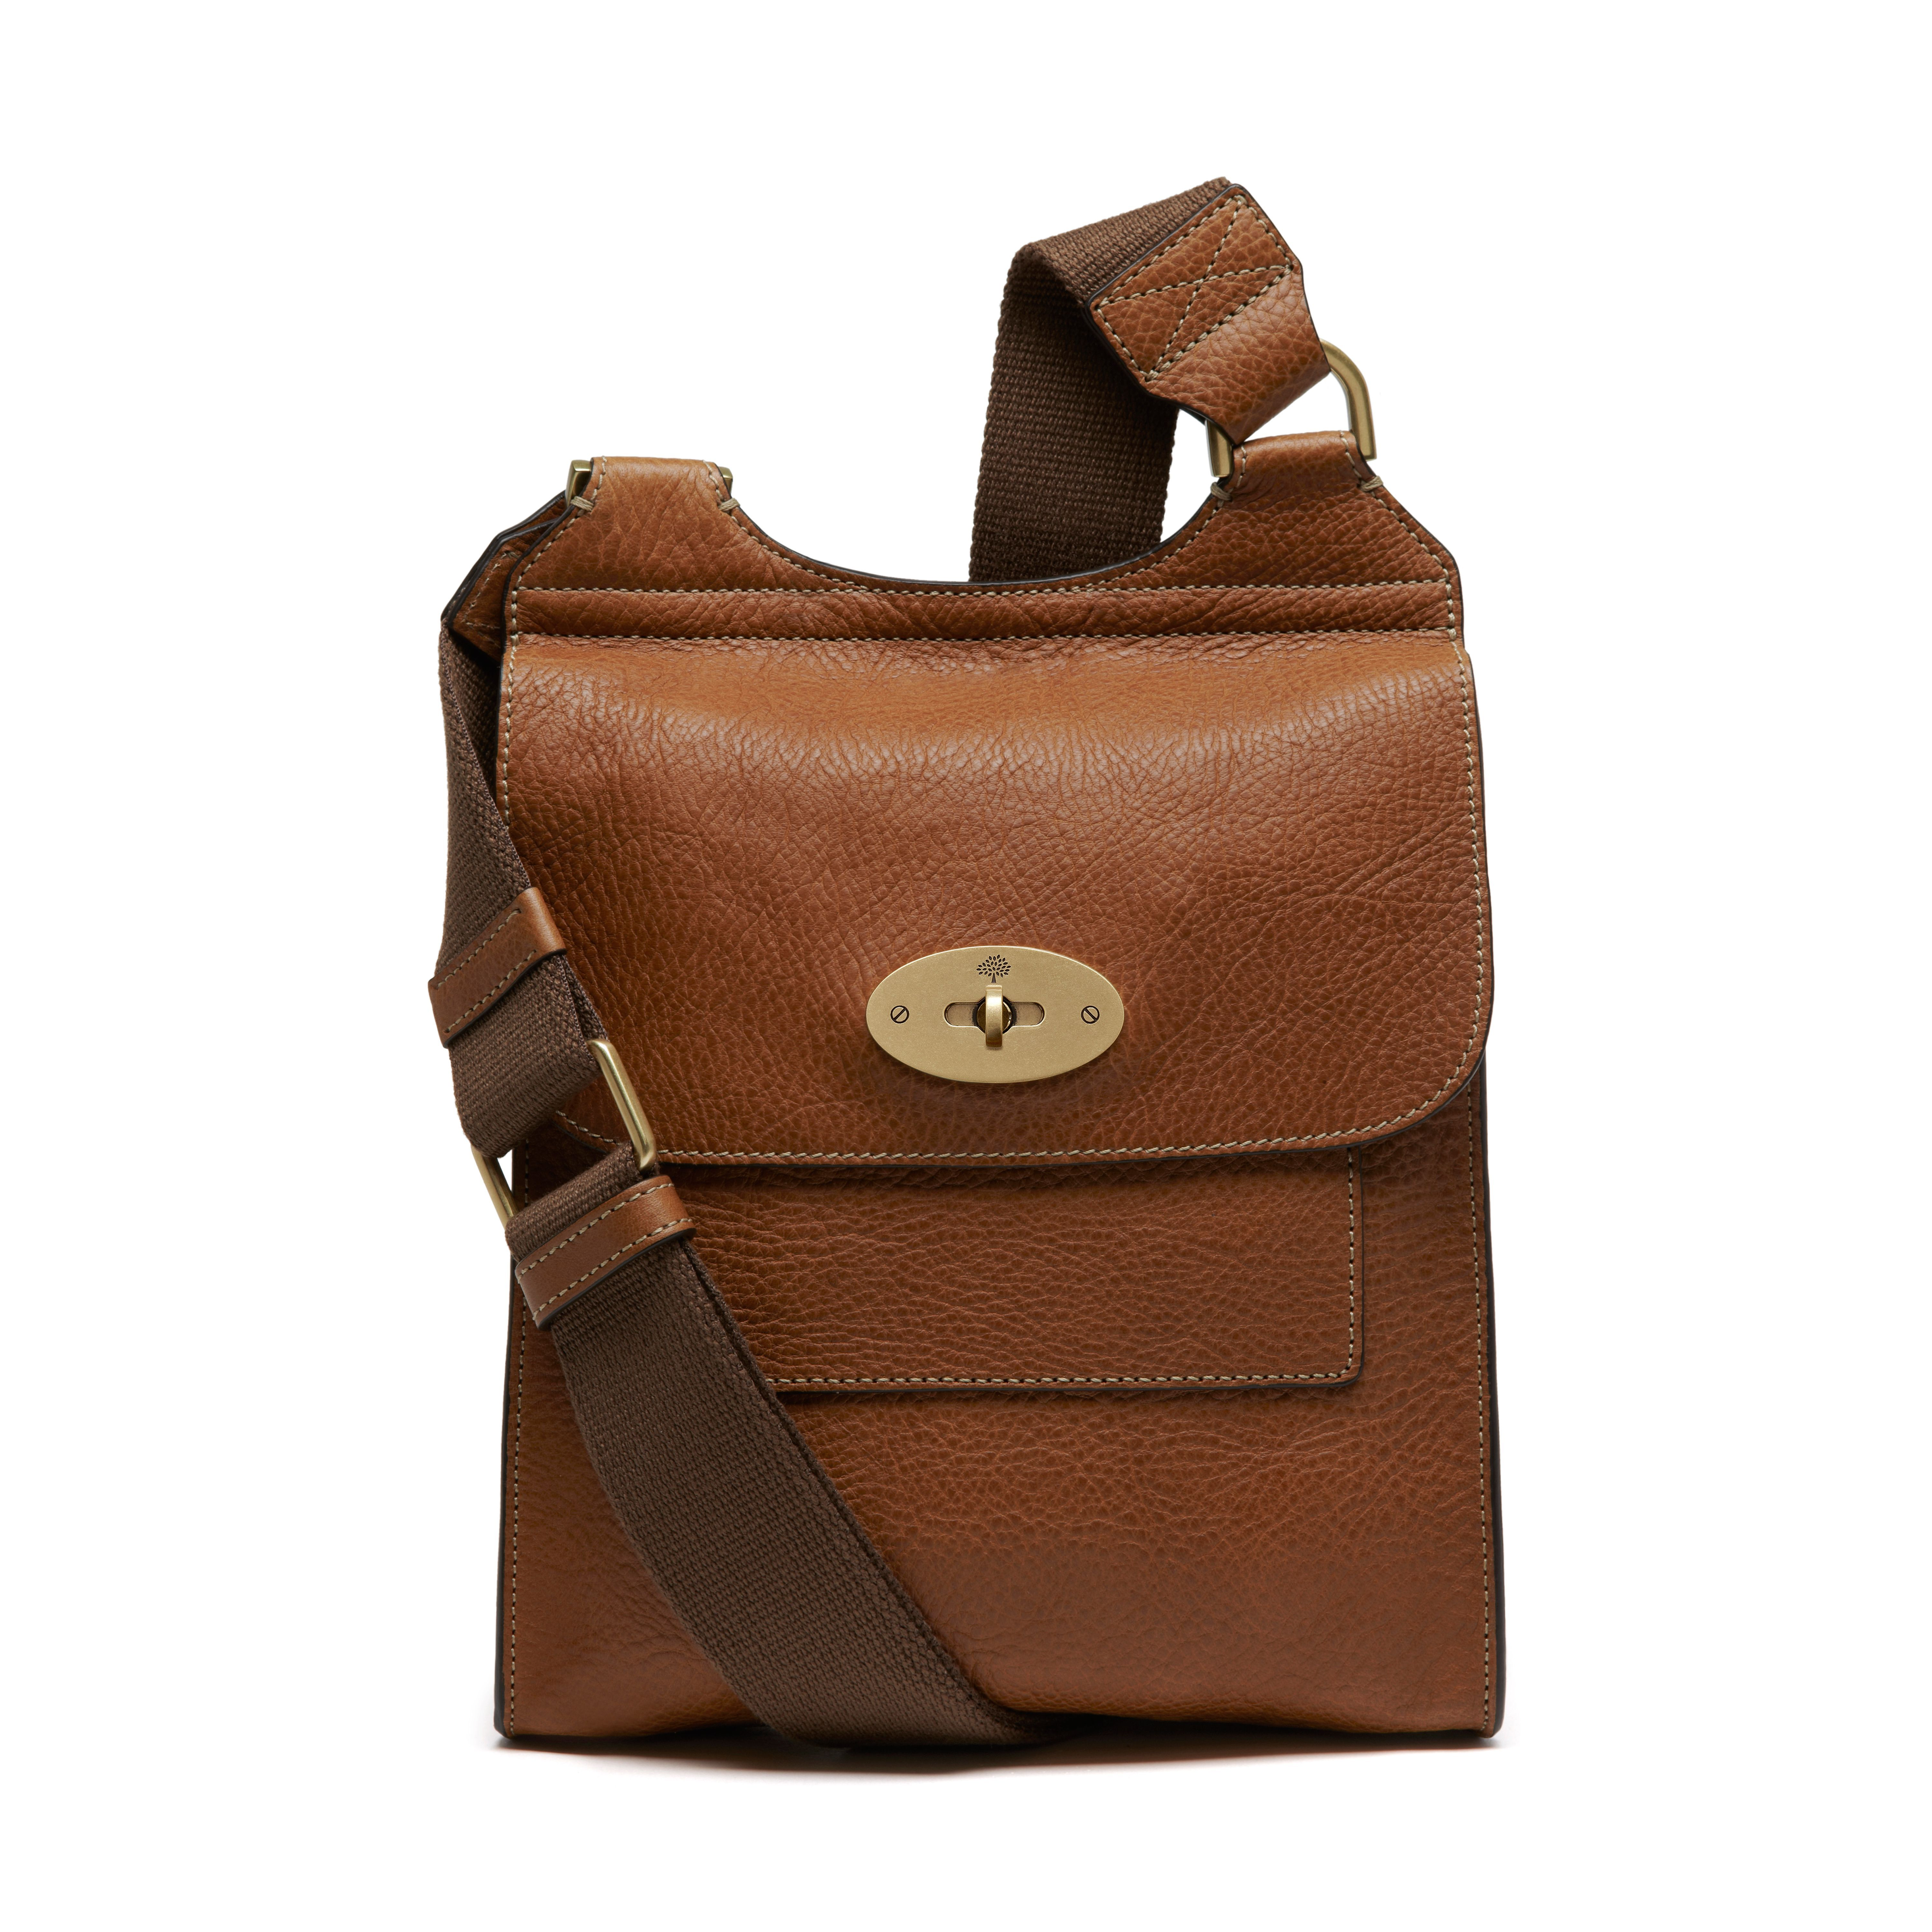 9603a90606 Classic   timeless Mulberry - Antony in Oak Natural Leather Mulberry  Messenger Bag